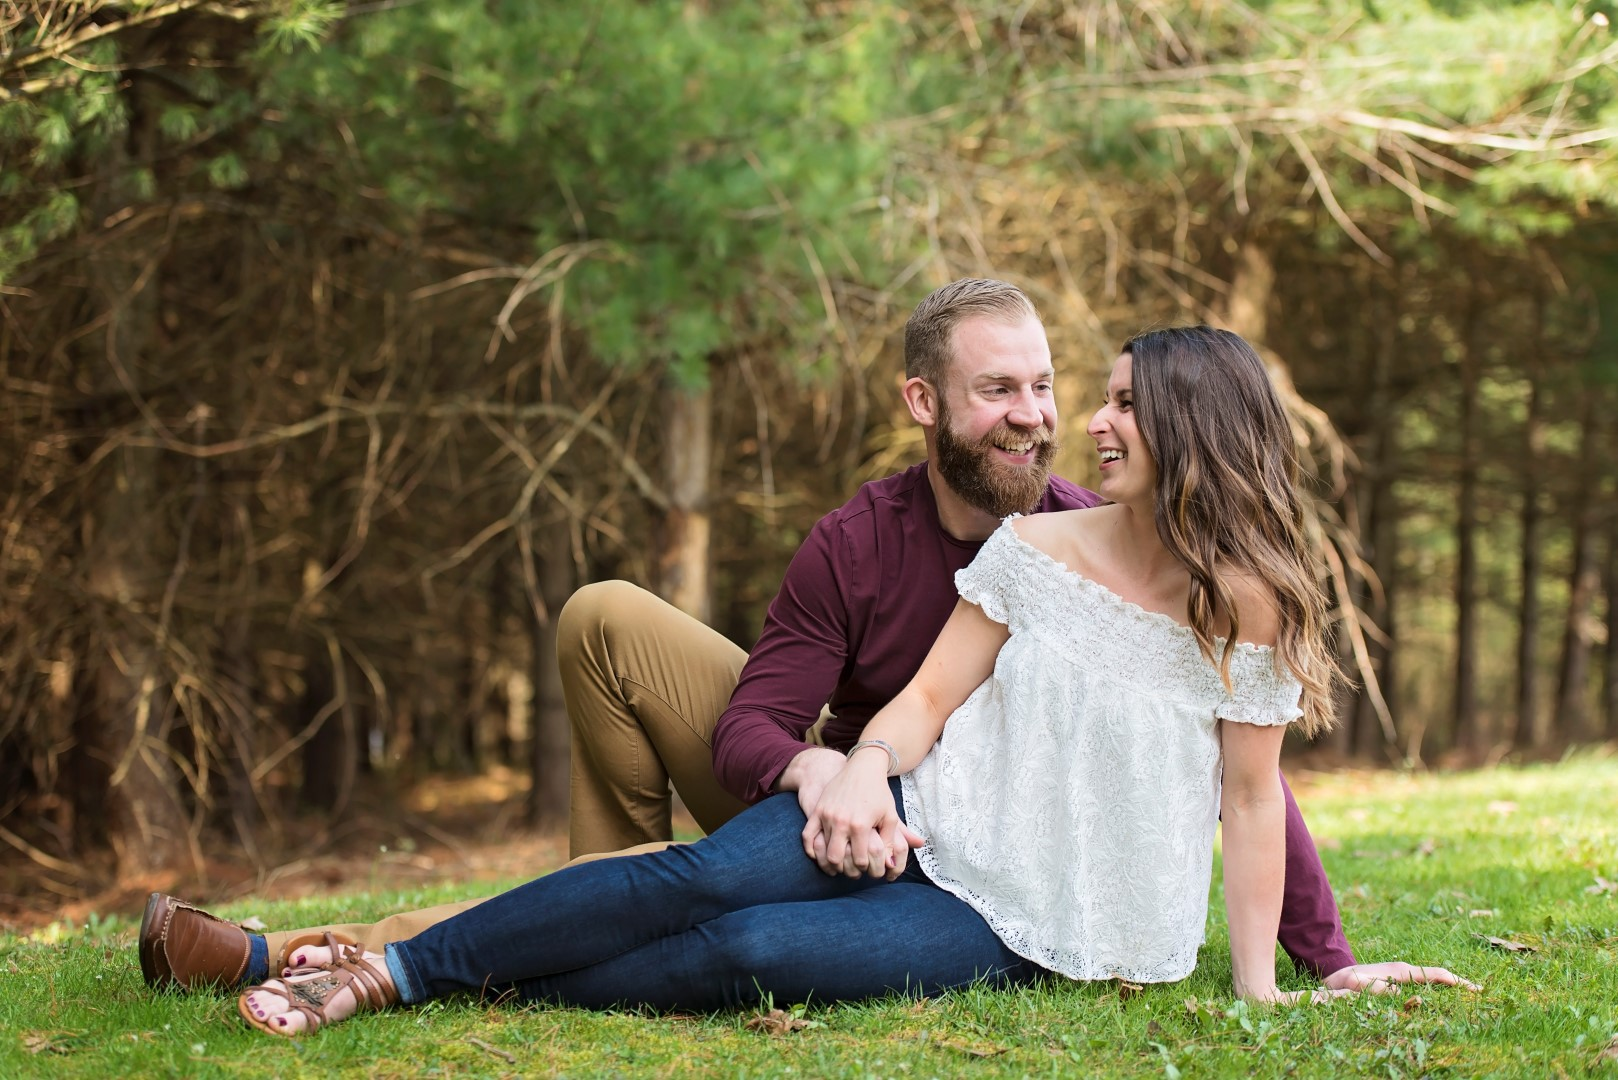 Grant+Healy_Engagement_Collection_02 (Large).jpg